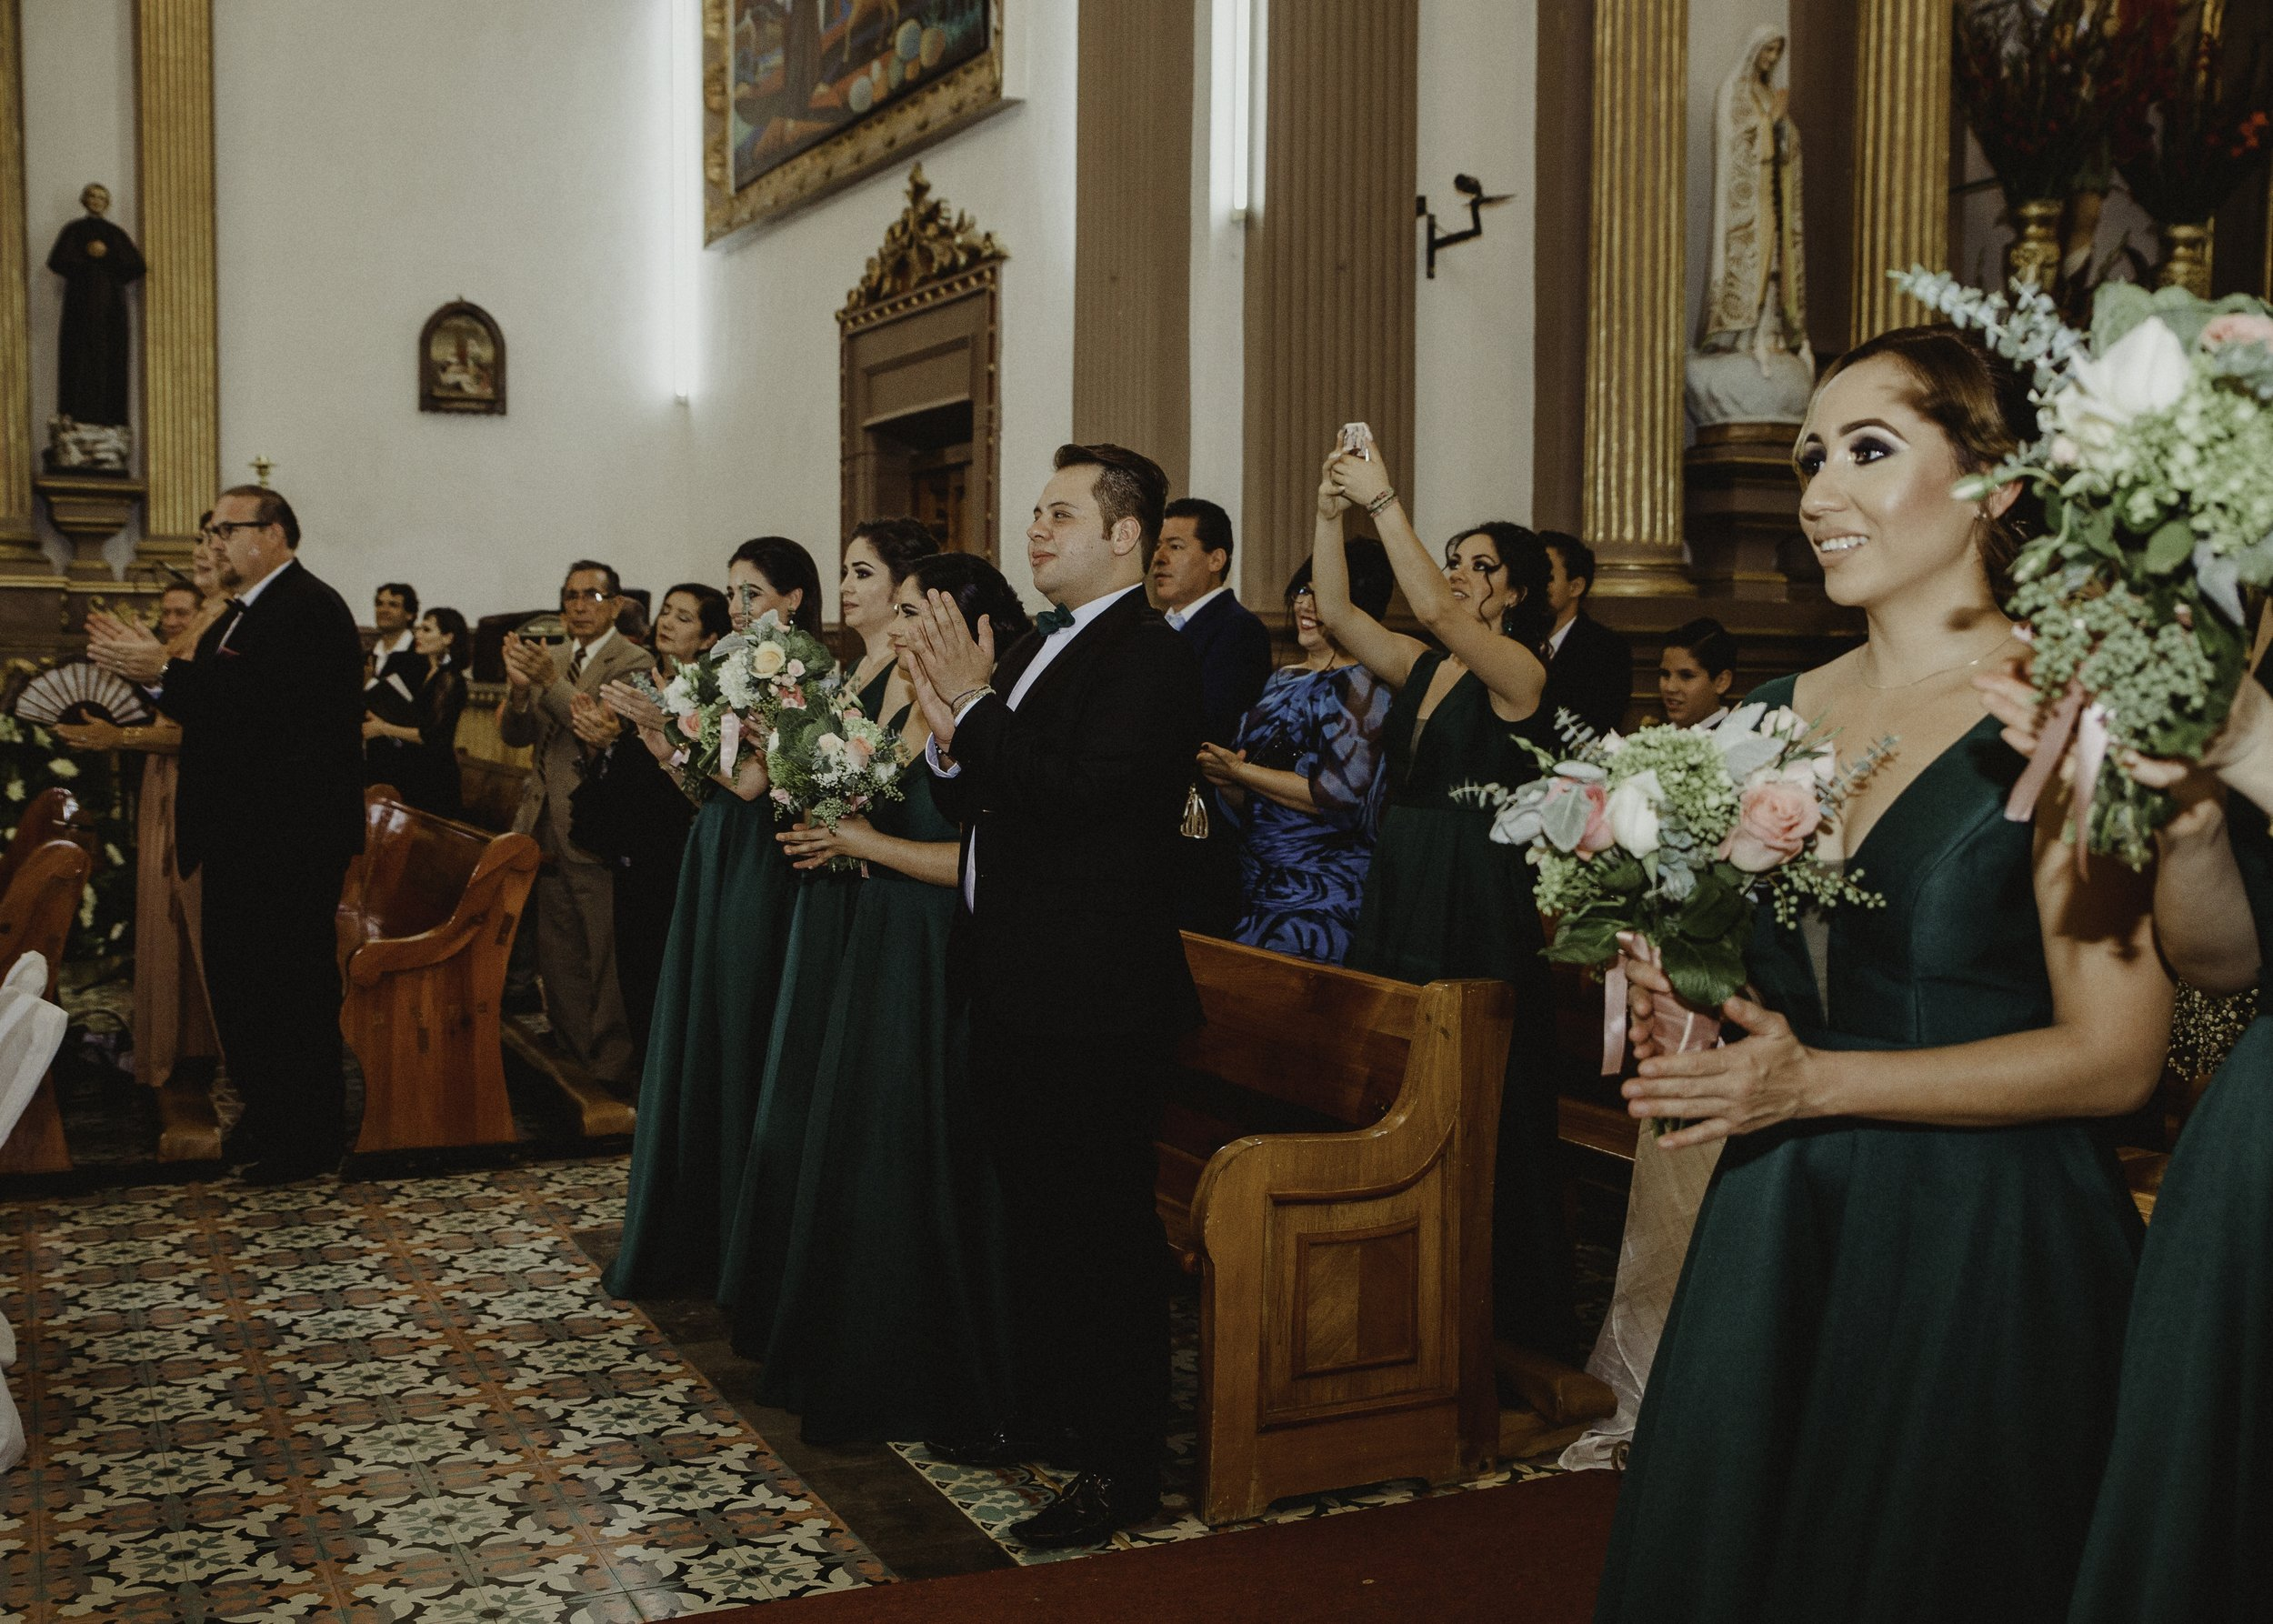 ODEMARIS_DANIEL-68carotida_photographer_boda_wedding.jpg